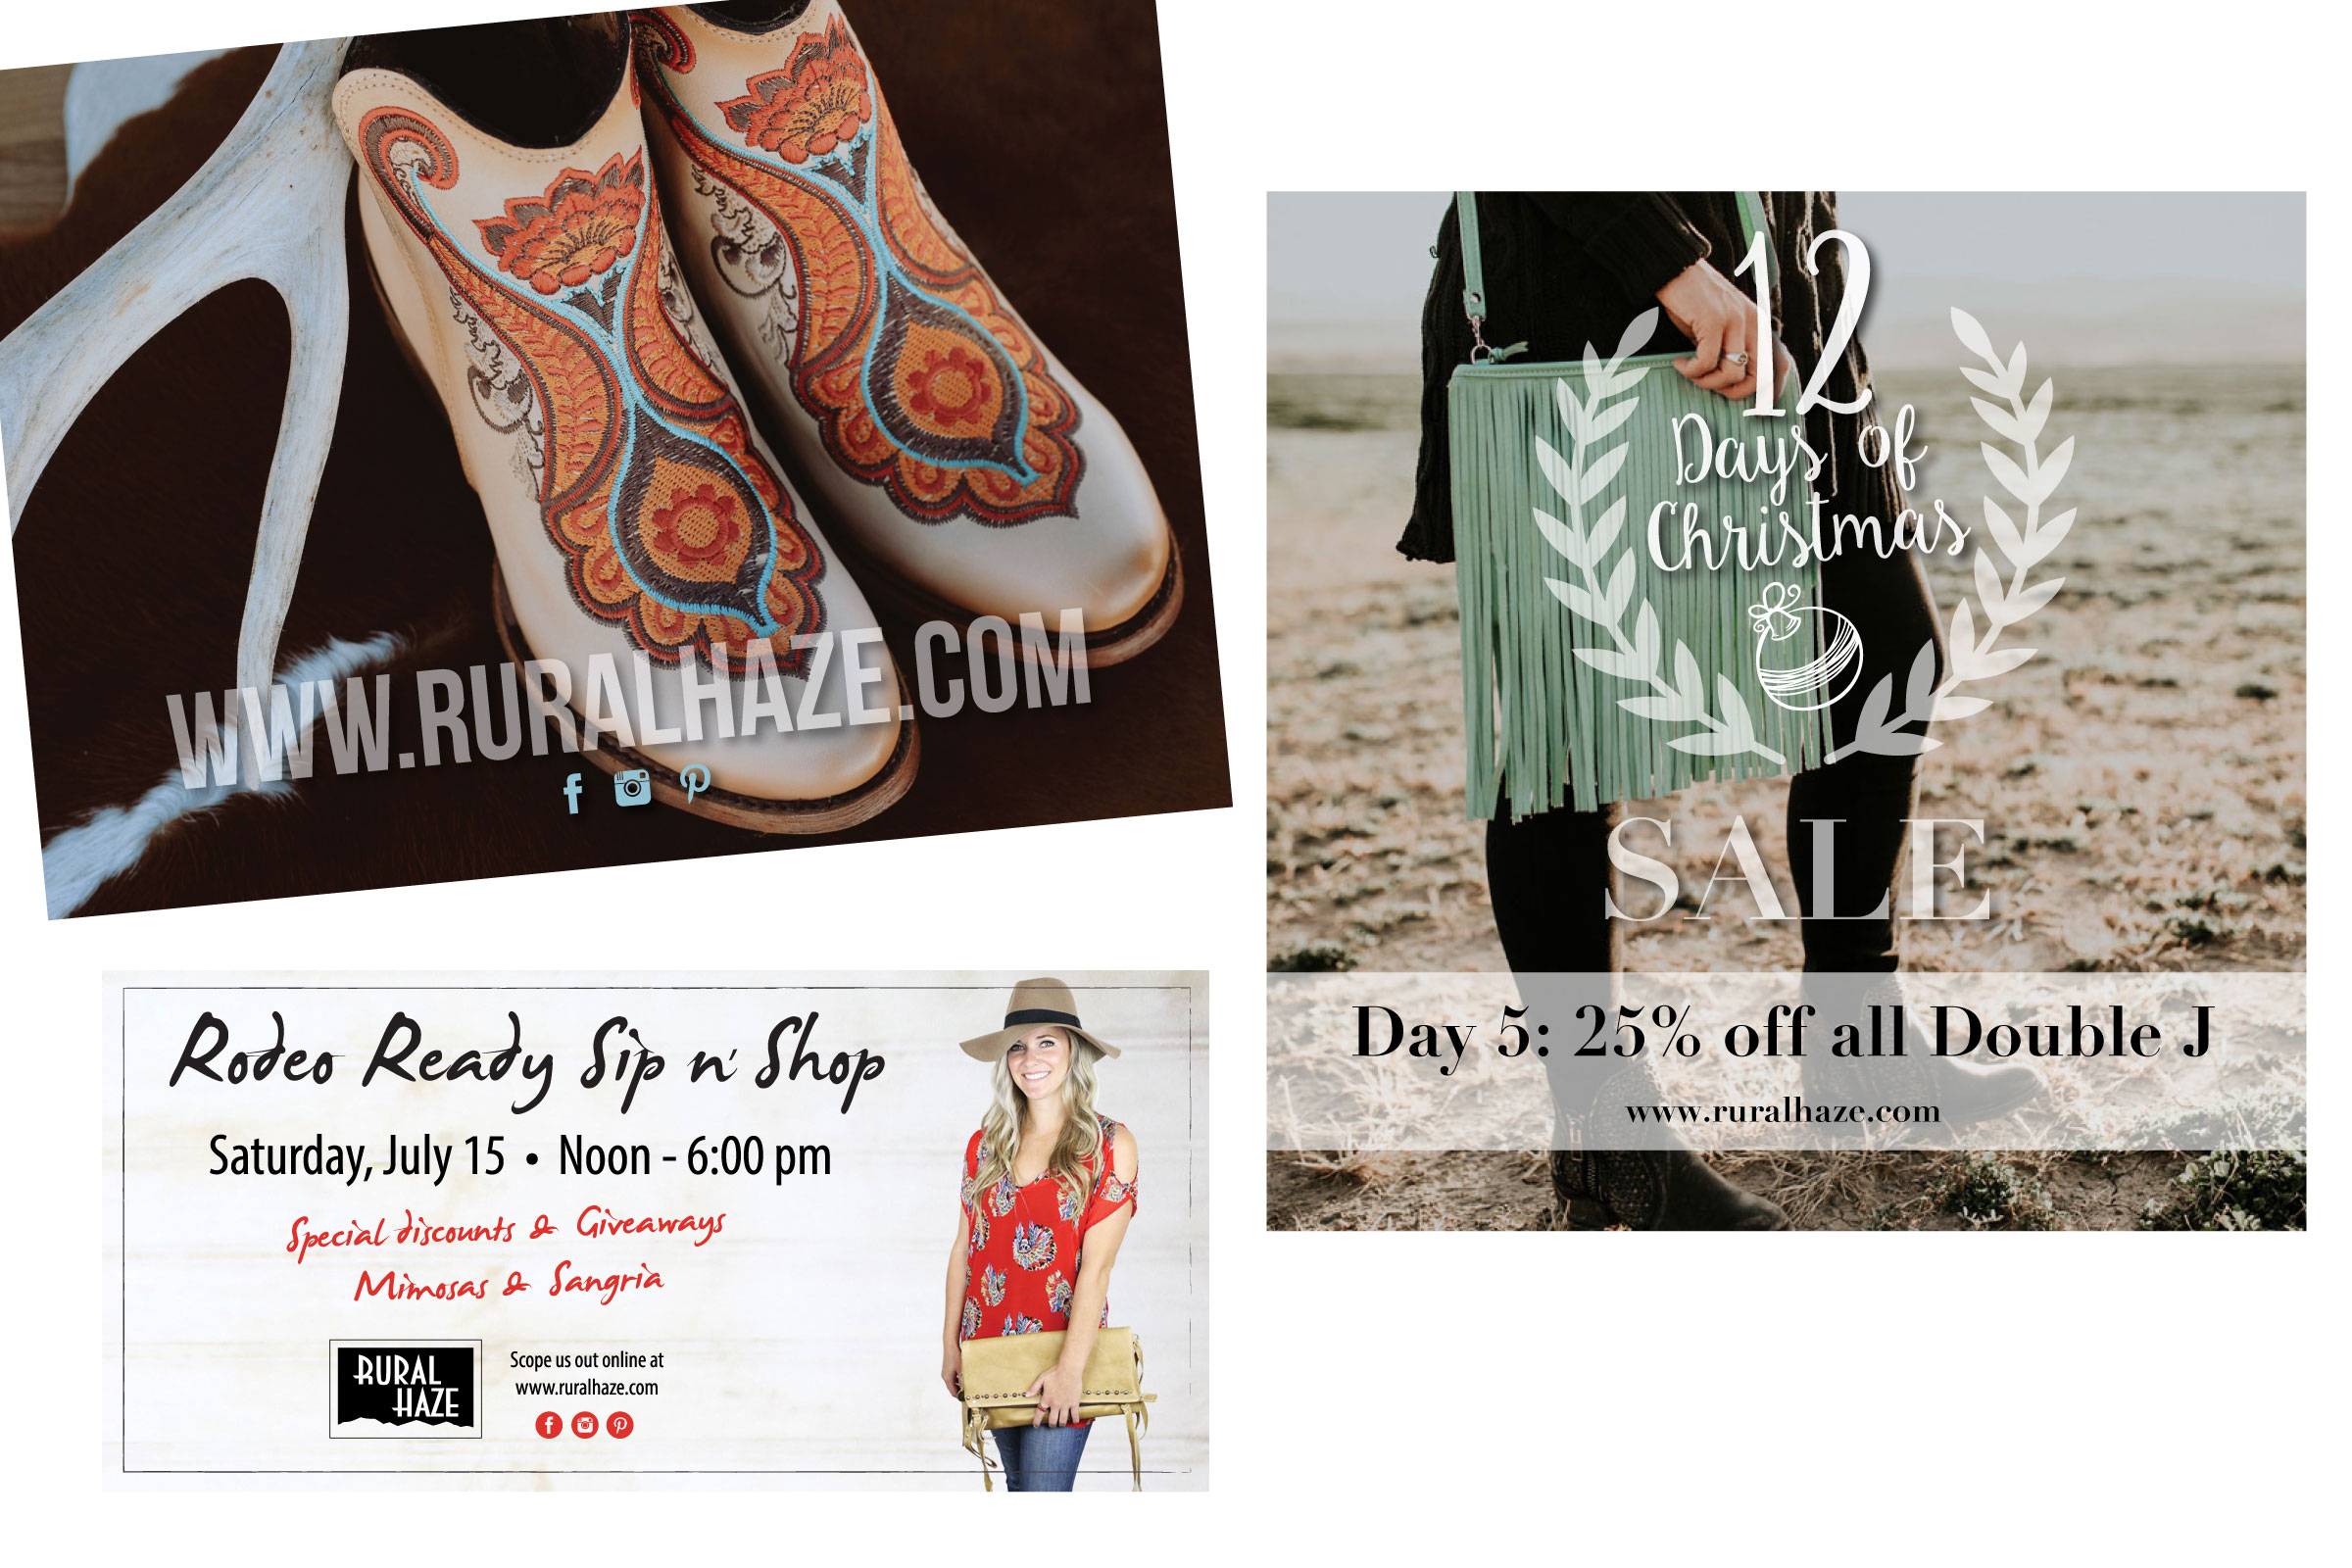 Rural Haze  is a boho-chic women's clothing boutique in Meridian, Idaho. We work together on their print marketing pieces and some social media and website graphics. Check them out online… if you are a boot fanatic they have a crazy good selection!